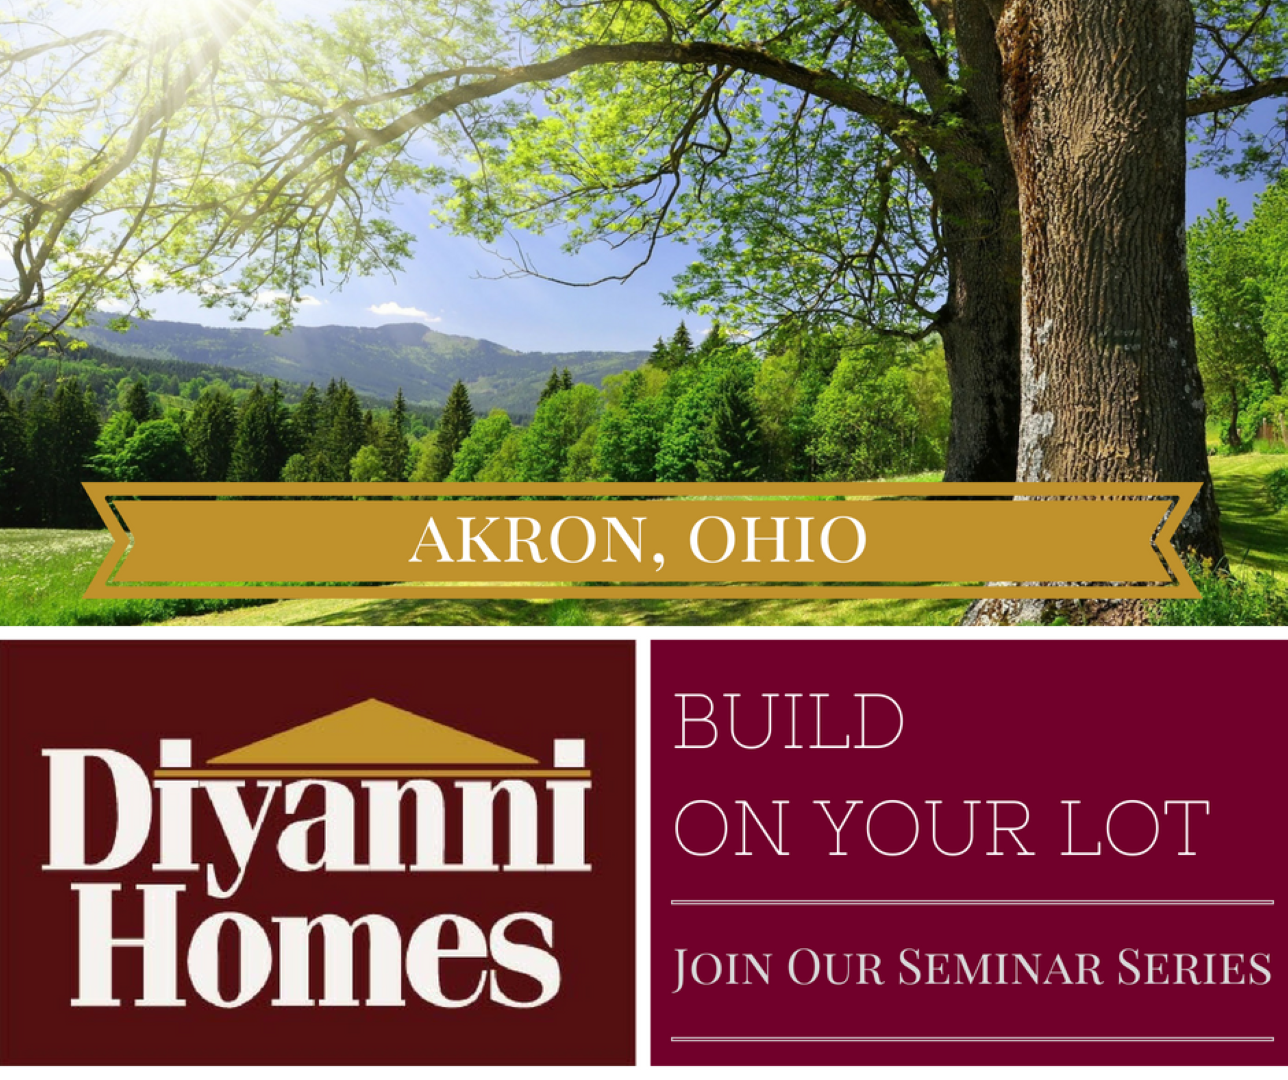 Build On Your Lot! July 2019 (Akron, OH)